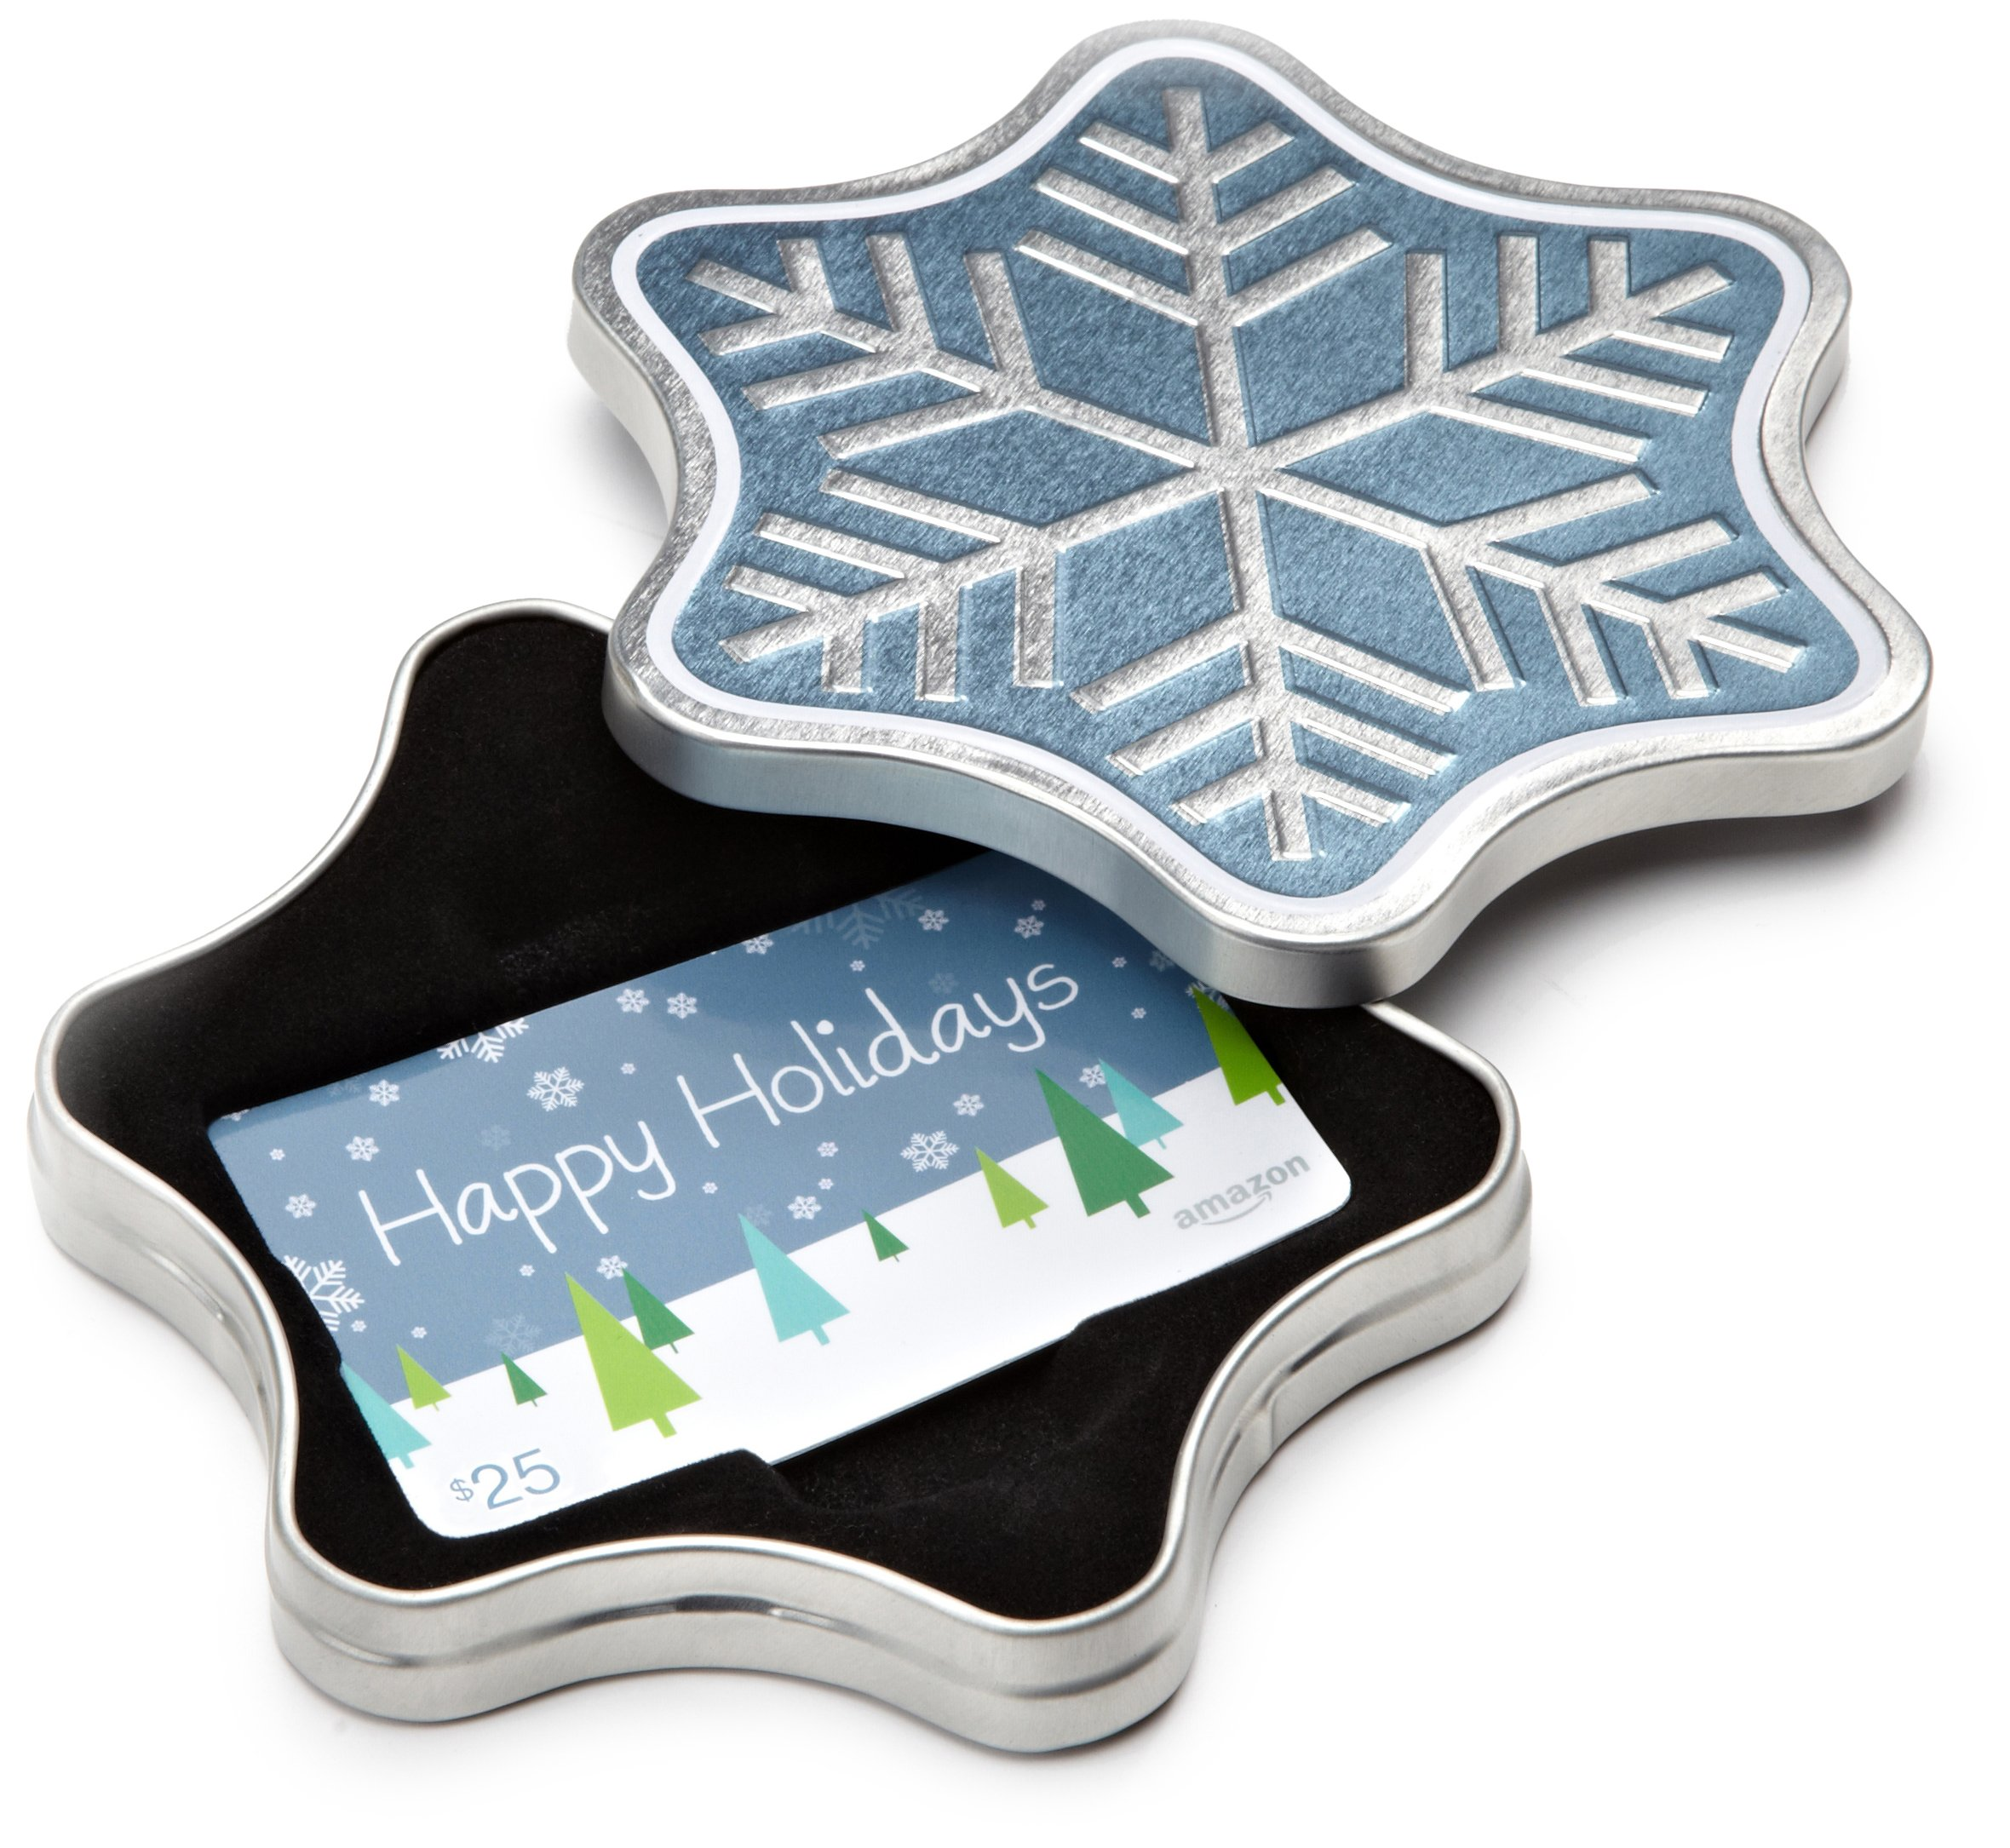 Pay outs as low as 1 for amazon gift card minimum of 10 for - Amazon Com Gift Card For Any Amount In A Snowflake Tin Happy Holidays Card